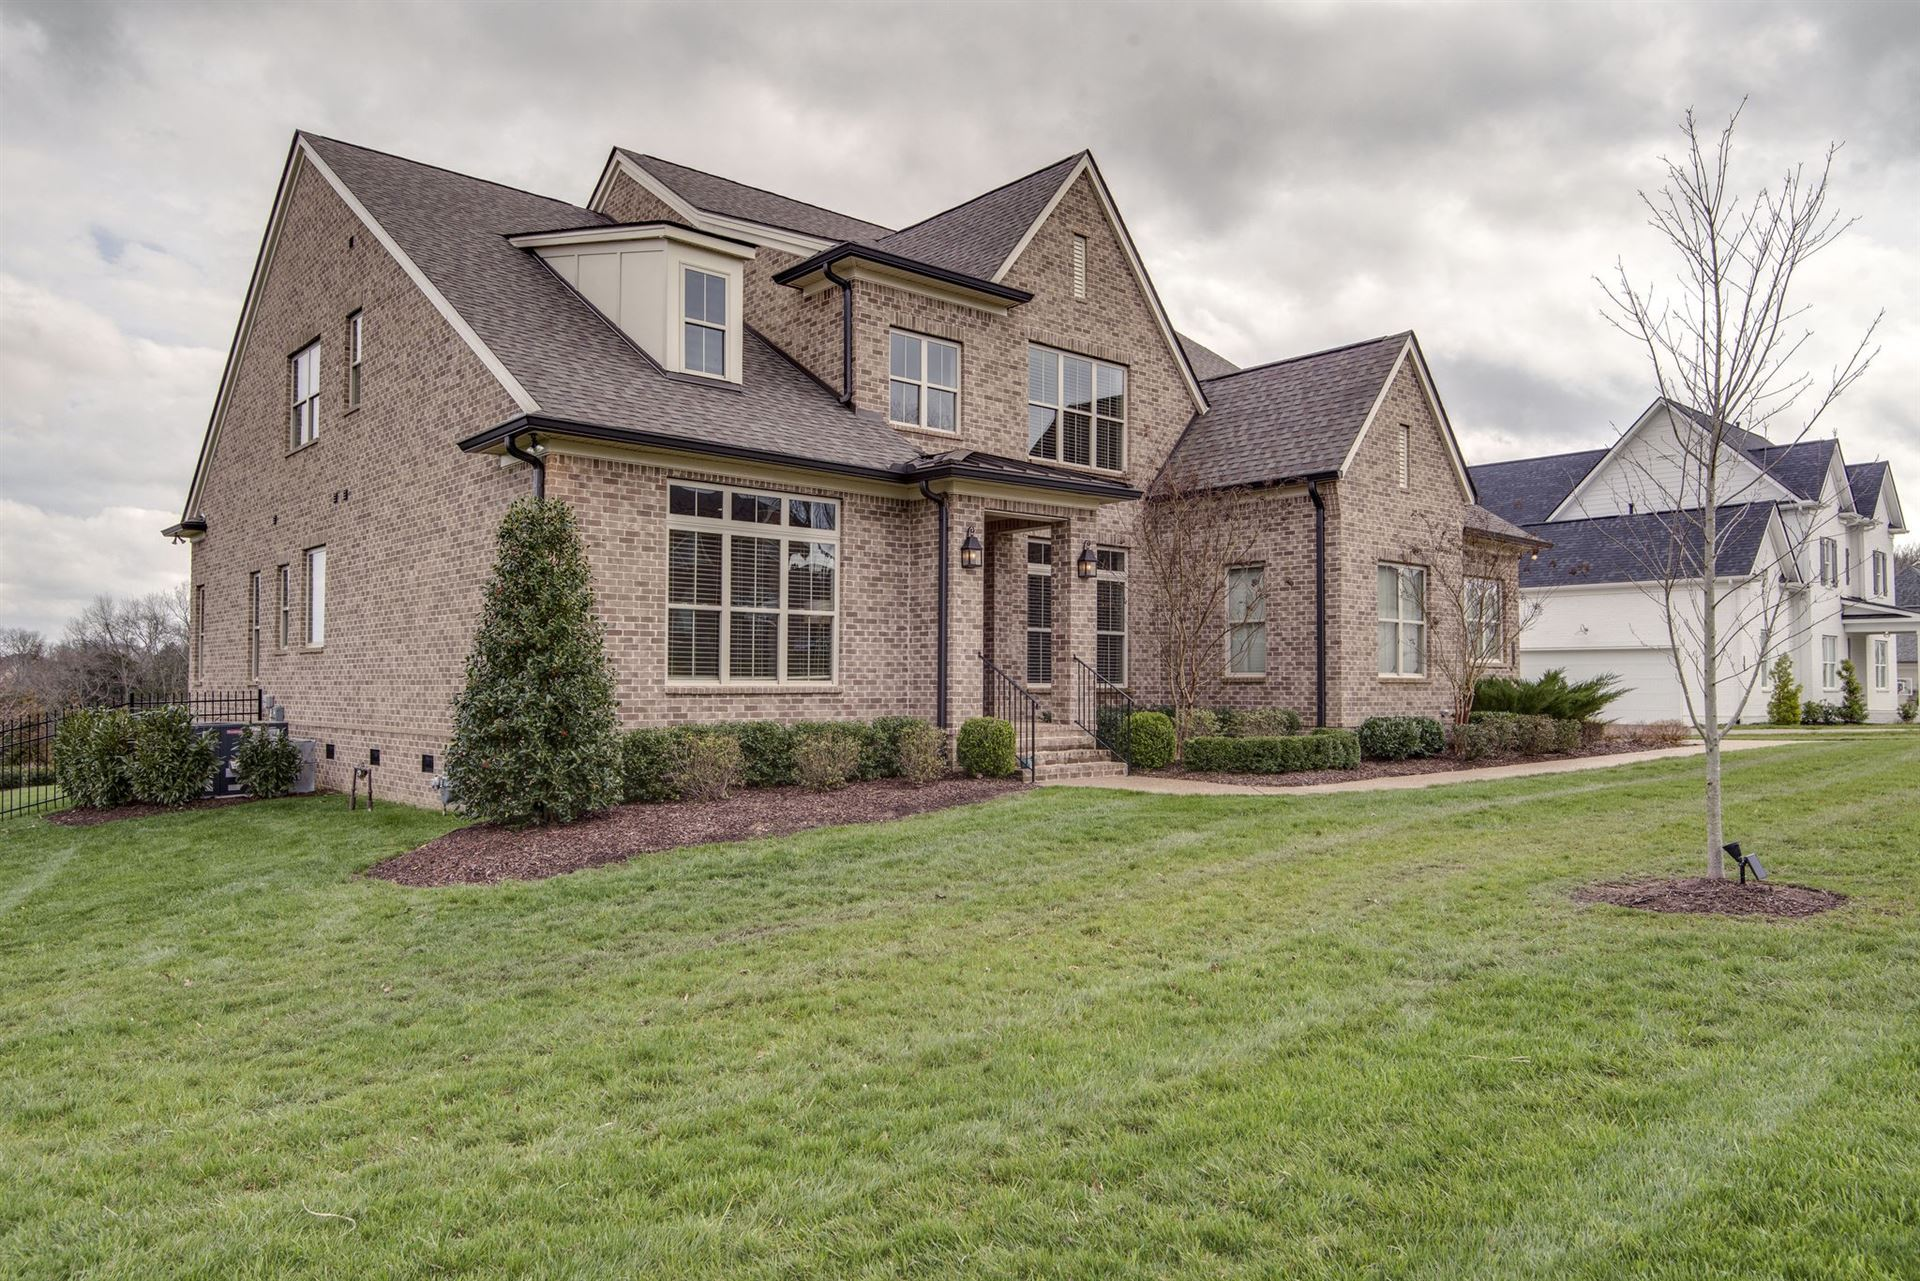 Photo of 204 Belgian Rd, Nolensville, TN 37135 (MLS # 2135537)